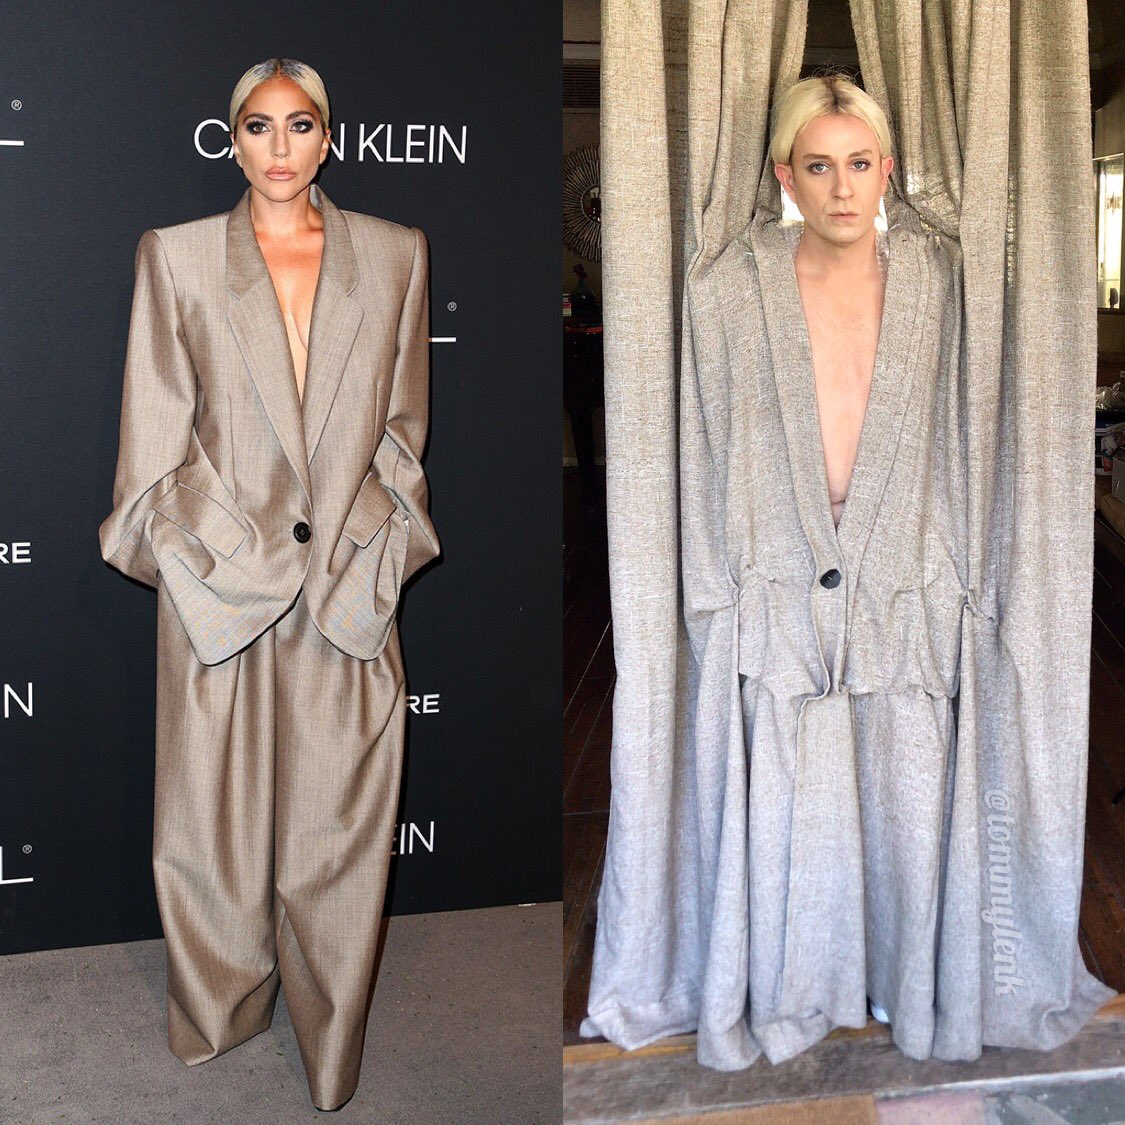 &quot;I saw it in the window and just couldn&#39;t resist it.&quot; - Carol Burnett @ladygaga @marcjacobs #LenkLewkForLess<br>http://pic.twitter.com/BALEZYtppJ